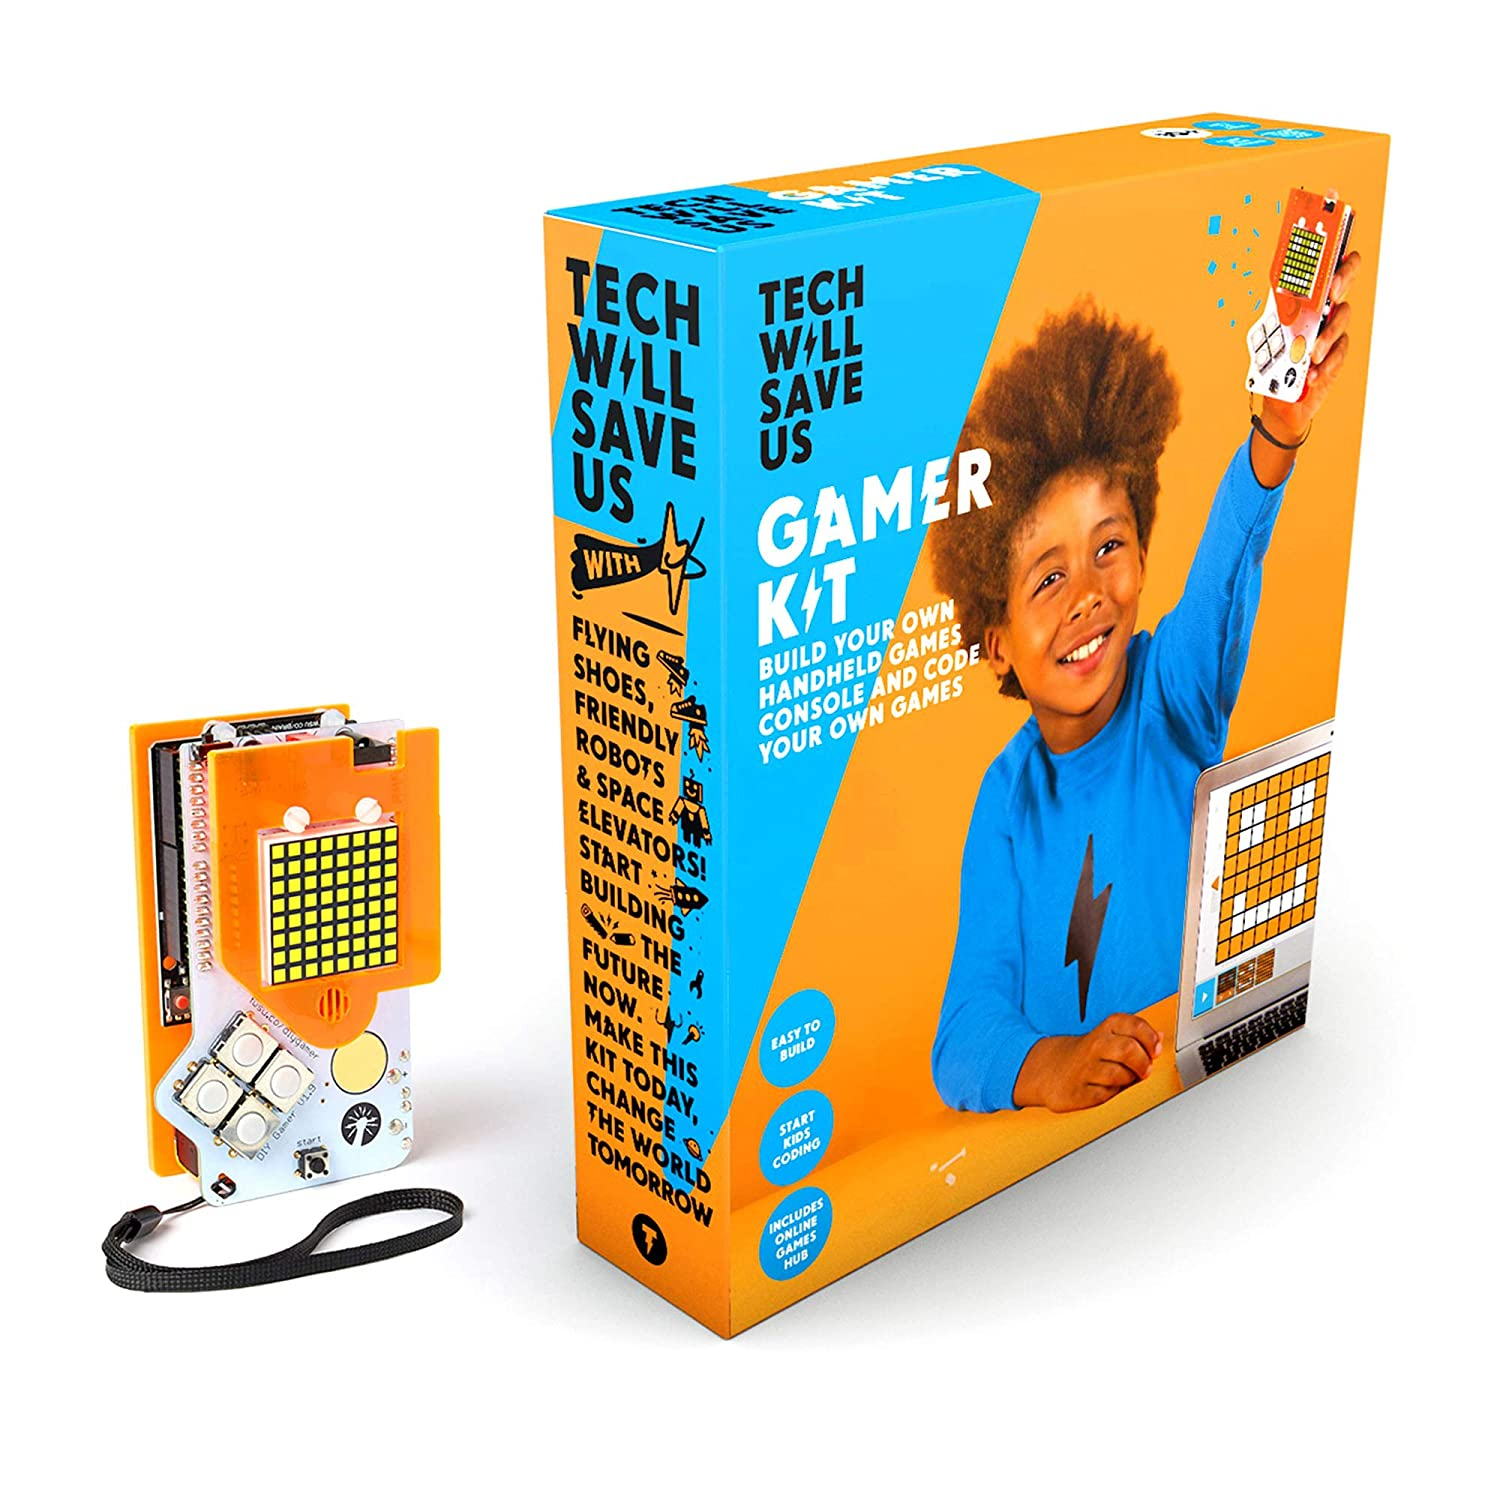 Tech Will Save Us, Gamer Kit (ready-soldered) | Coding Games For Kids, Ages 10 + Technology Will Save Us 5060402300219